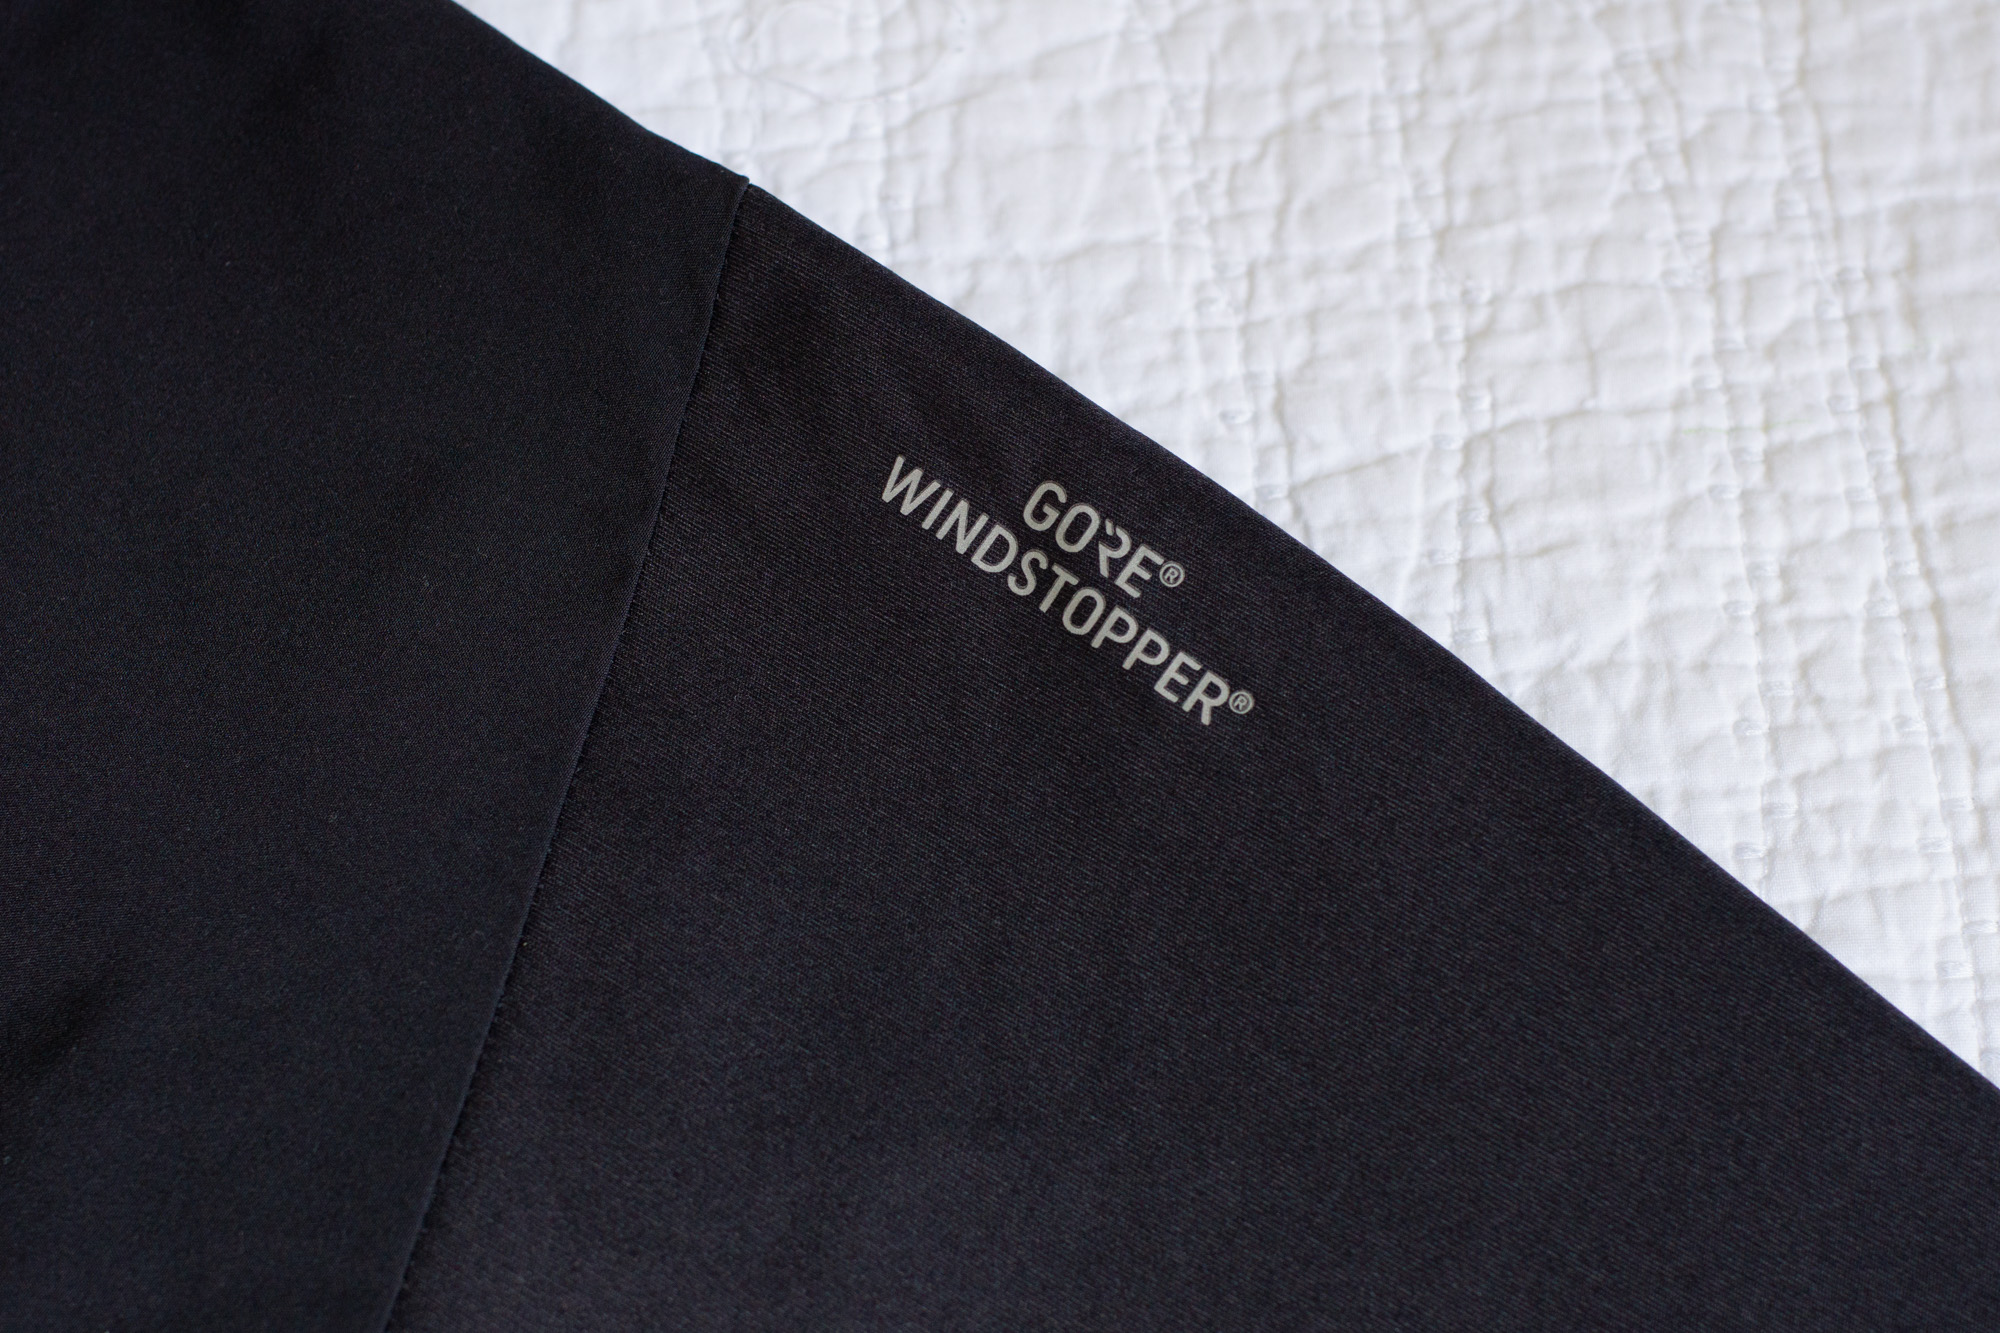 UA Unstoppable Gore Windstopper Pant close up